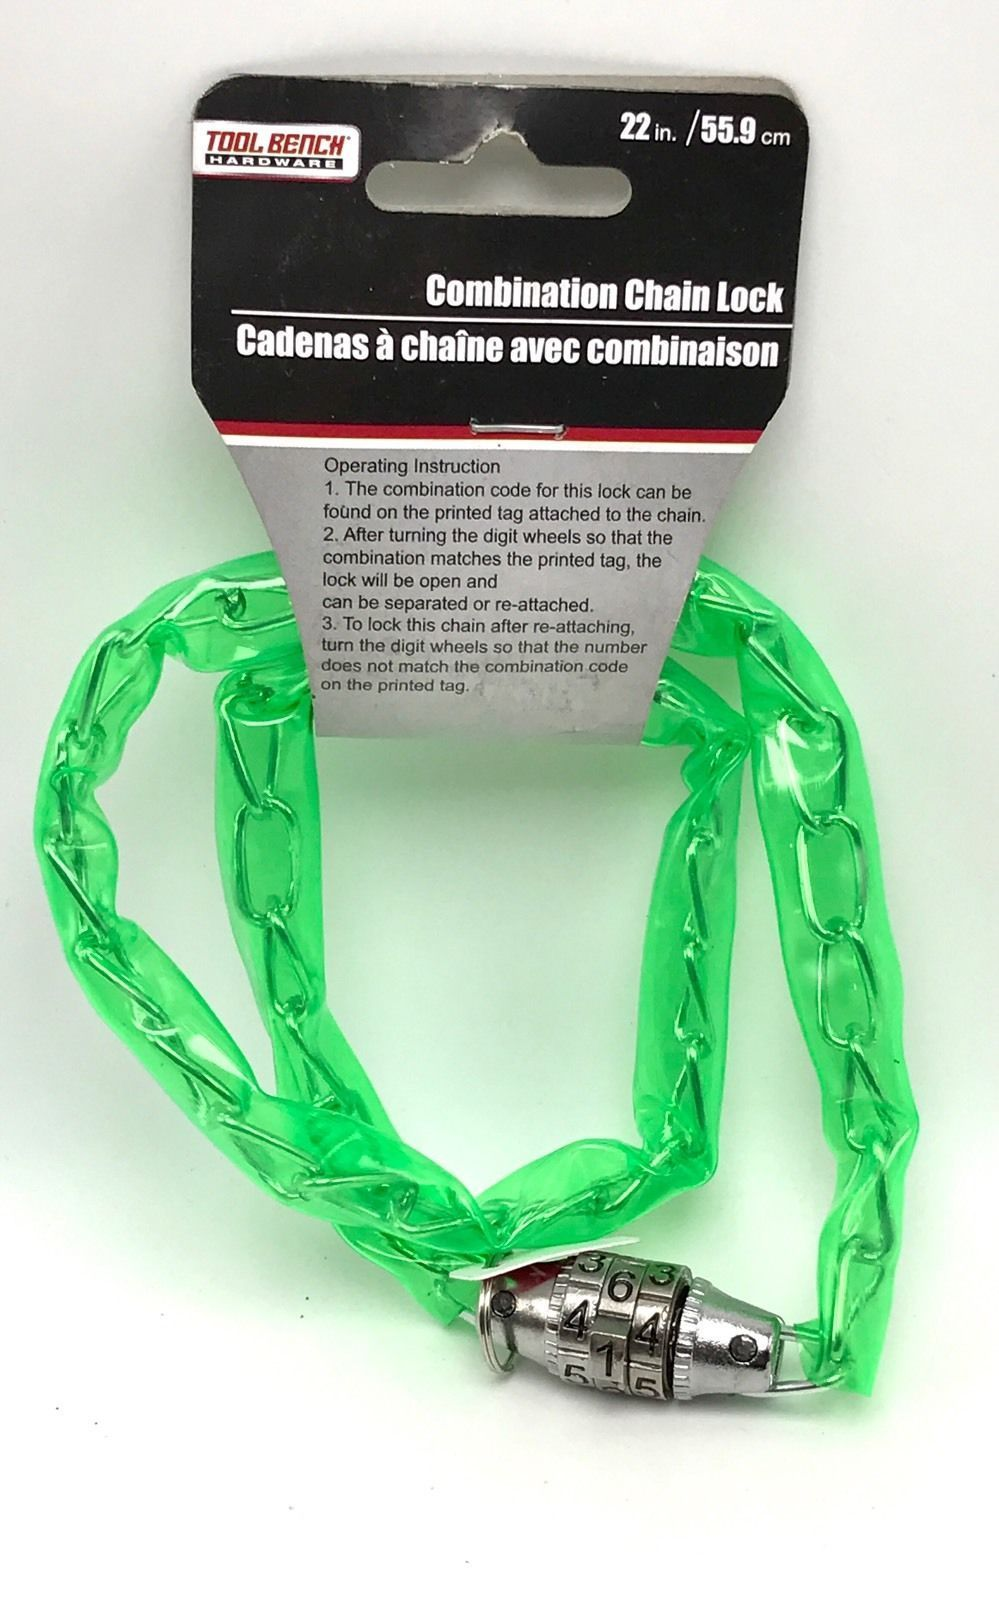 Sensational Bicycle Chain Combination Lock 22 Inch By Tool Bench Green Machost Co Dining Chair Design Ideas Machostcouk